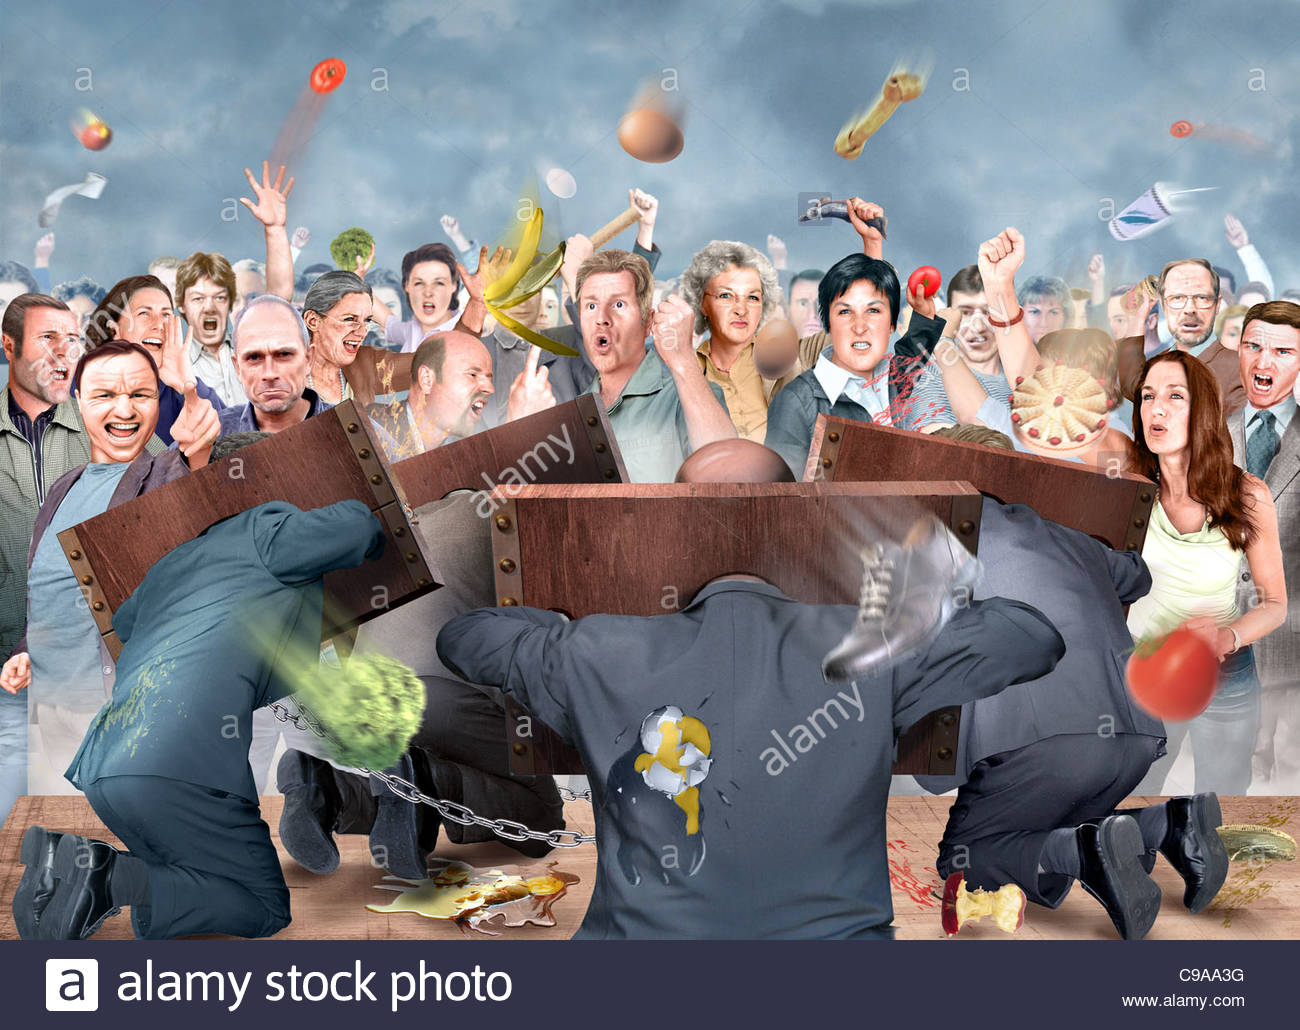 policy pillory politically political Czech political political political - Stock Image